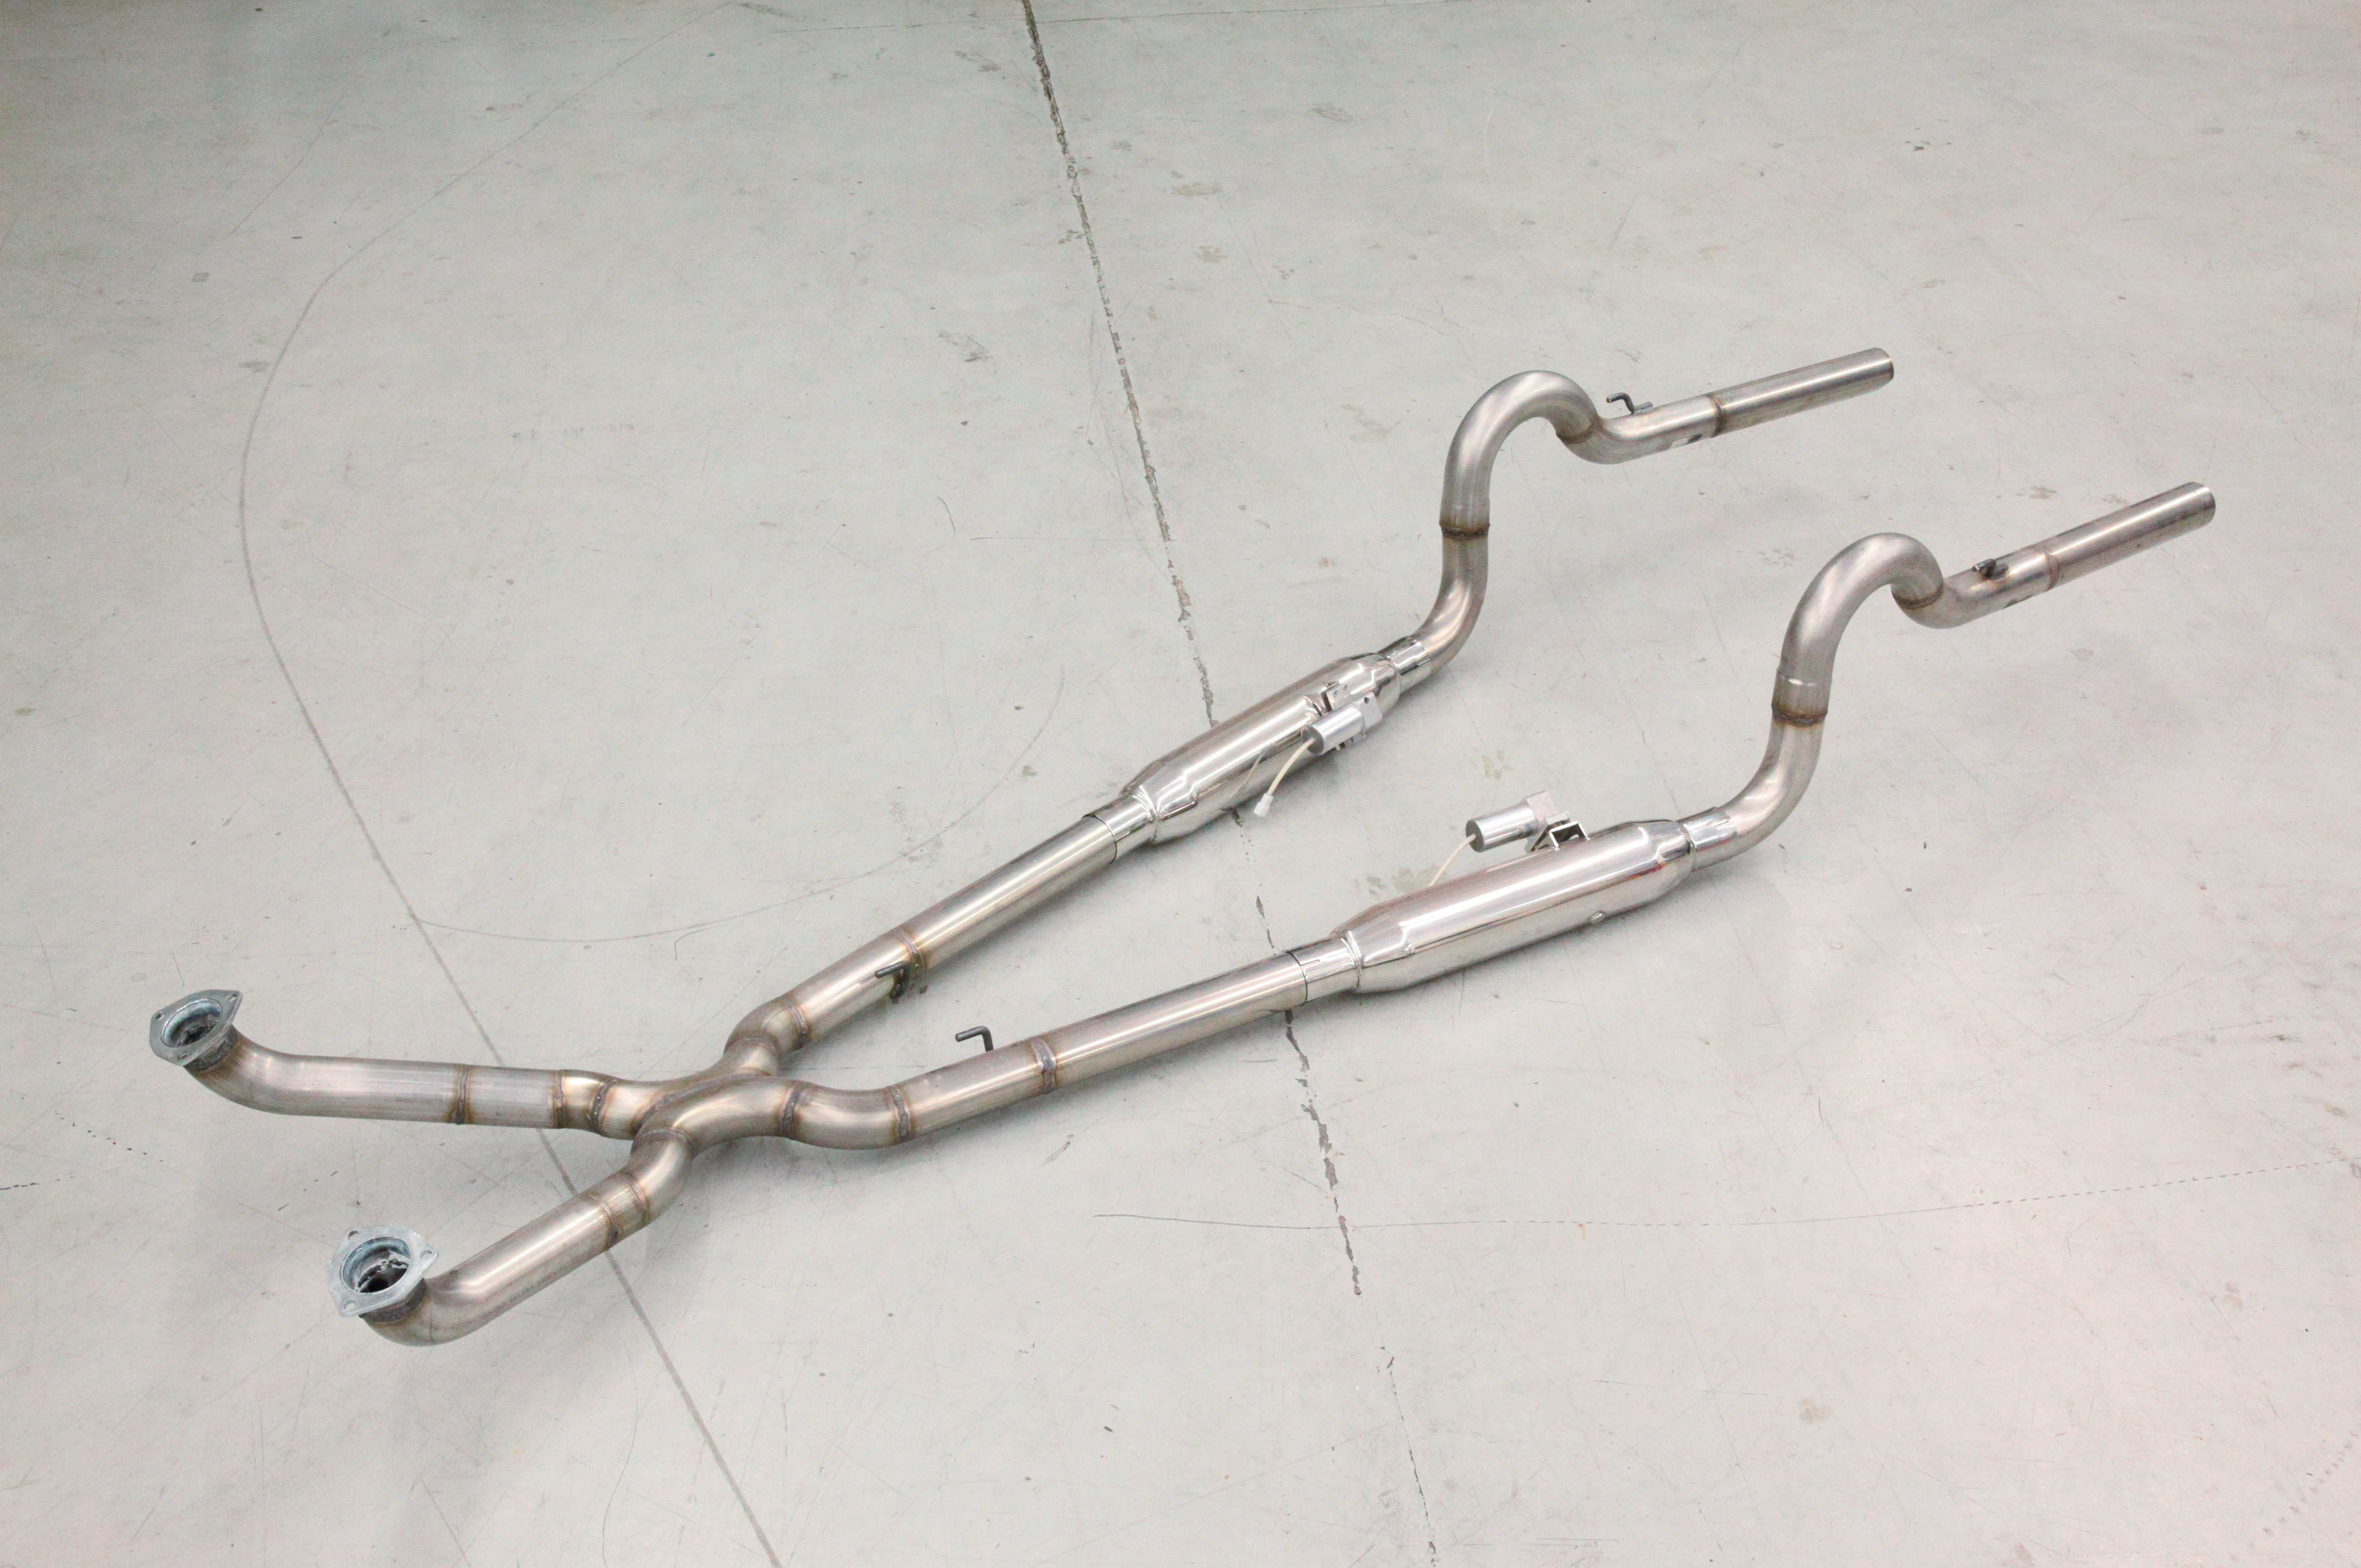 DIY Exhaust System - Custom Exhaust Done at Home - Hot Rod